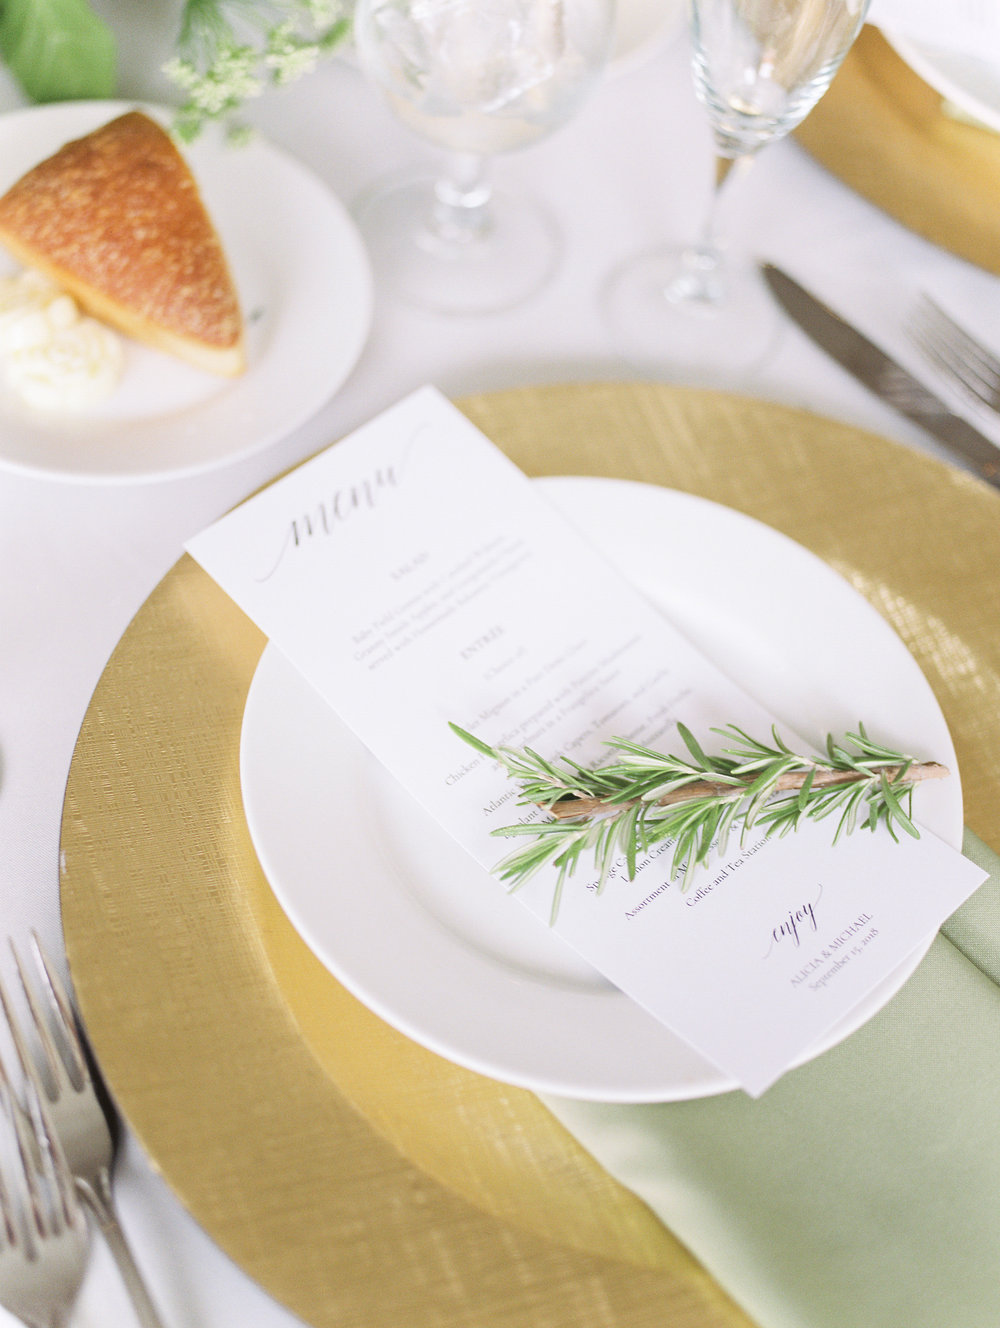 Beautiful and minimal menus topped with a sprig of Rosemary bring all the European vibes to this white and gold place setting at this bright boho chic Tyler Gardens wedding in Bucks County